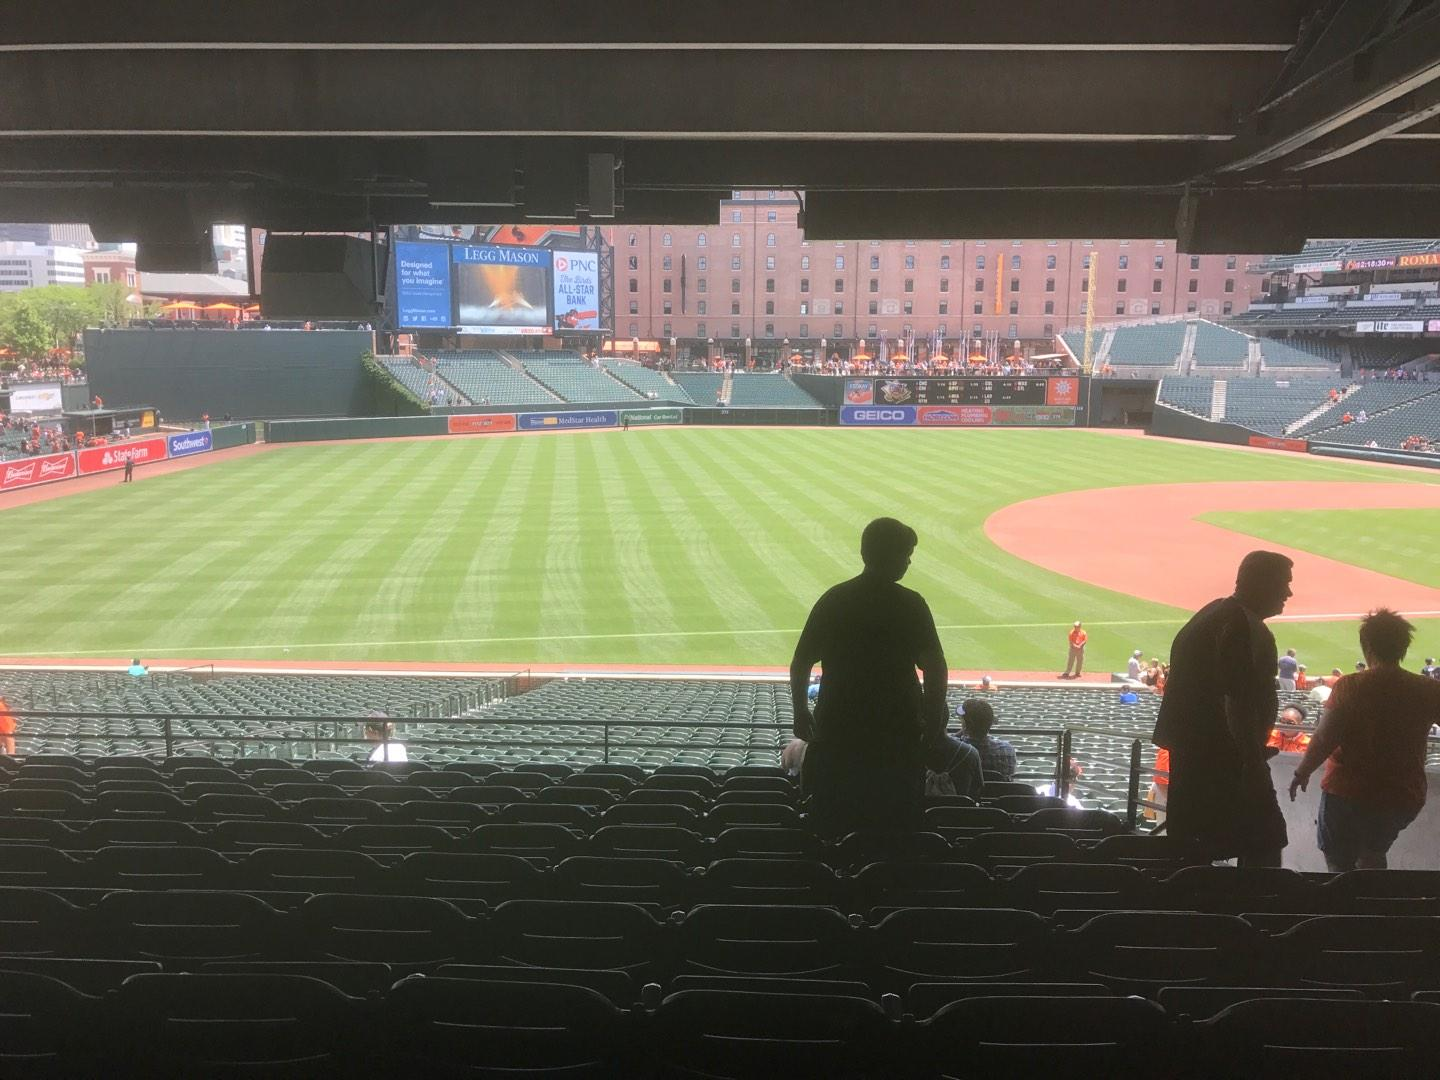 Oriole Park at Camden Yards Section 61 Row 11 Seat 5